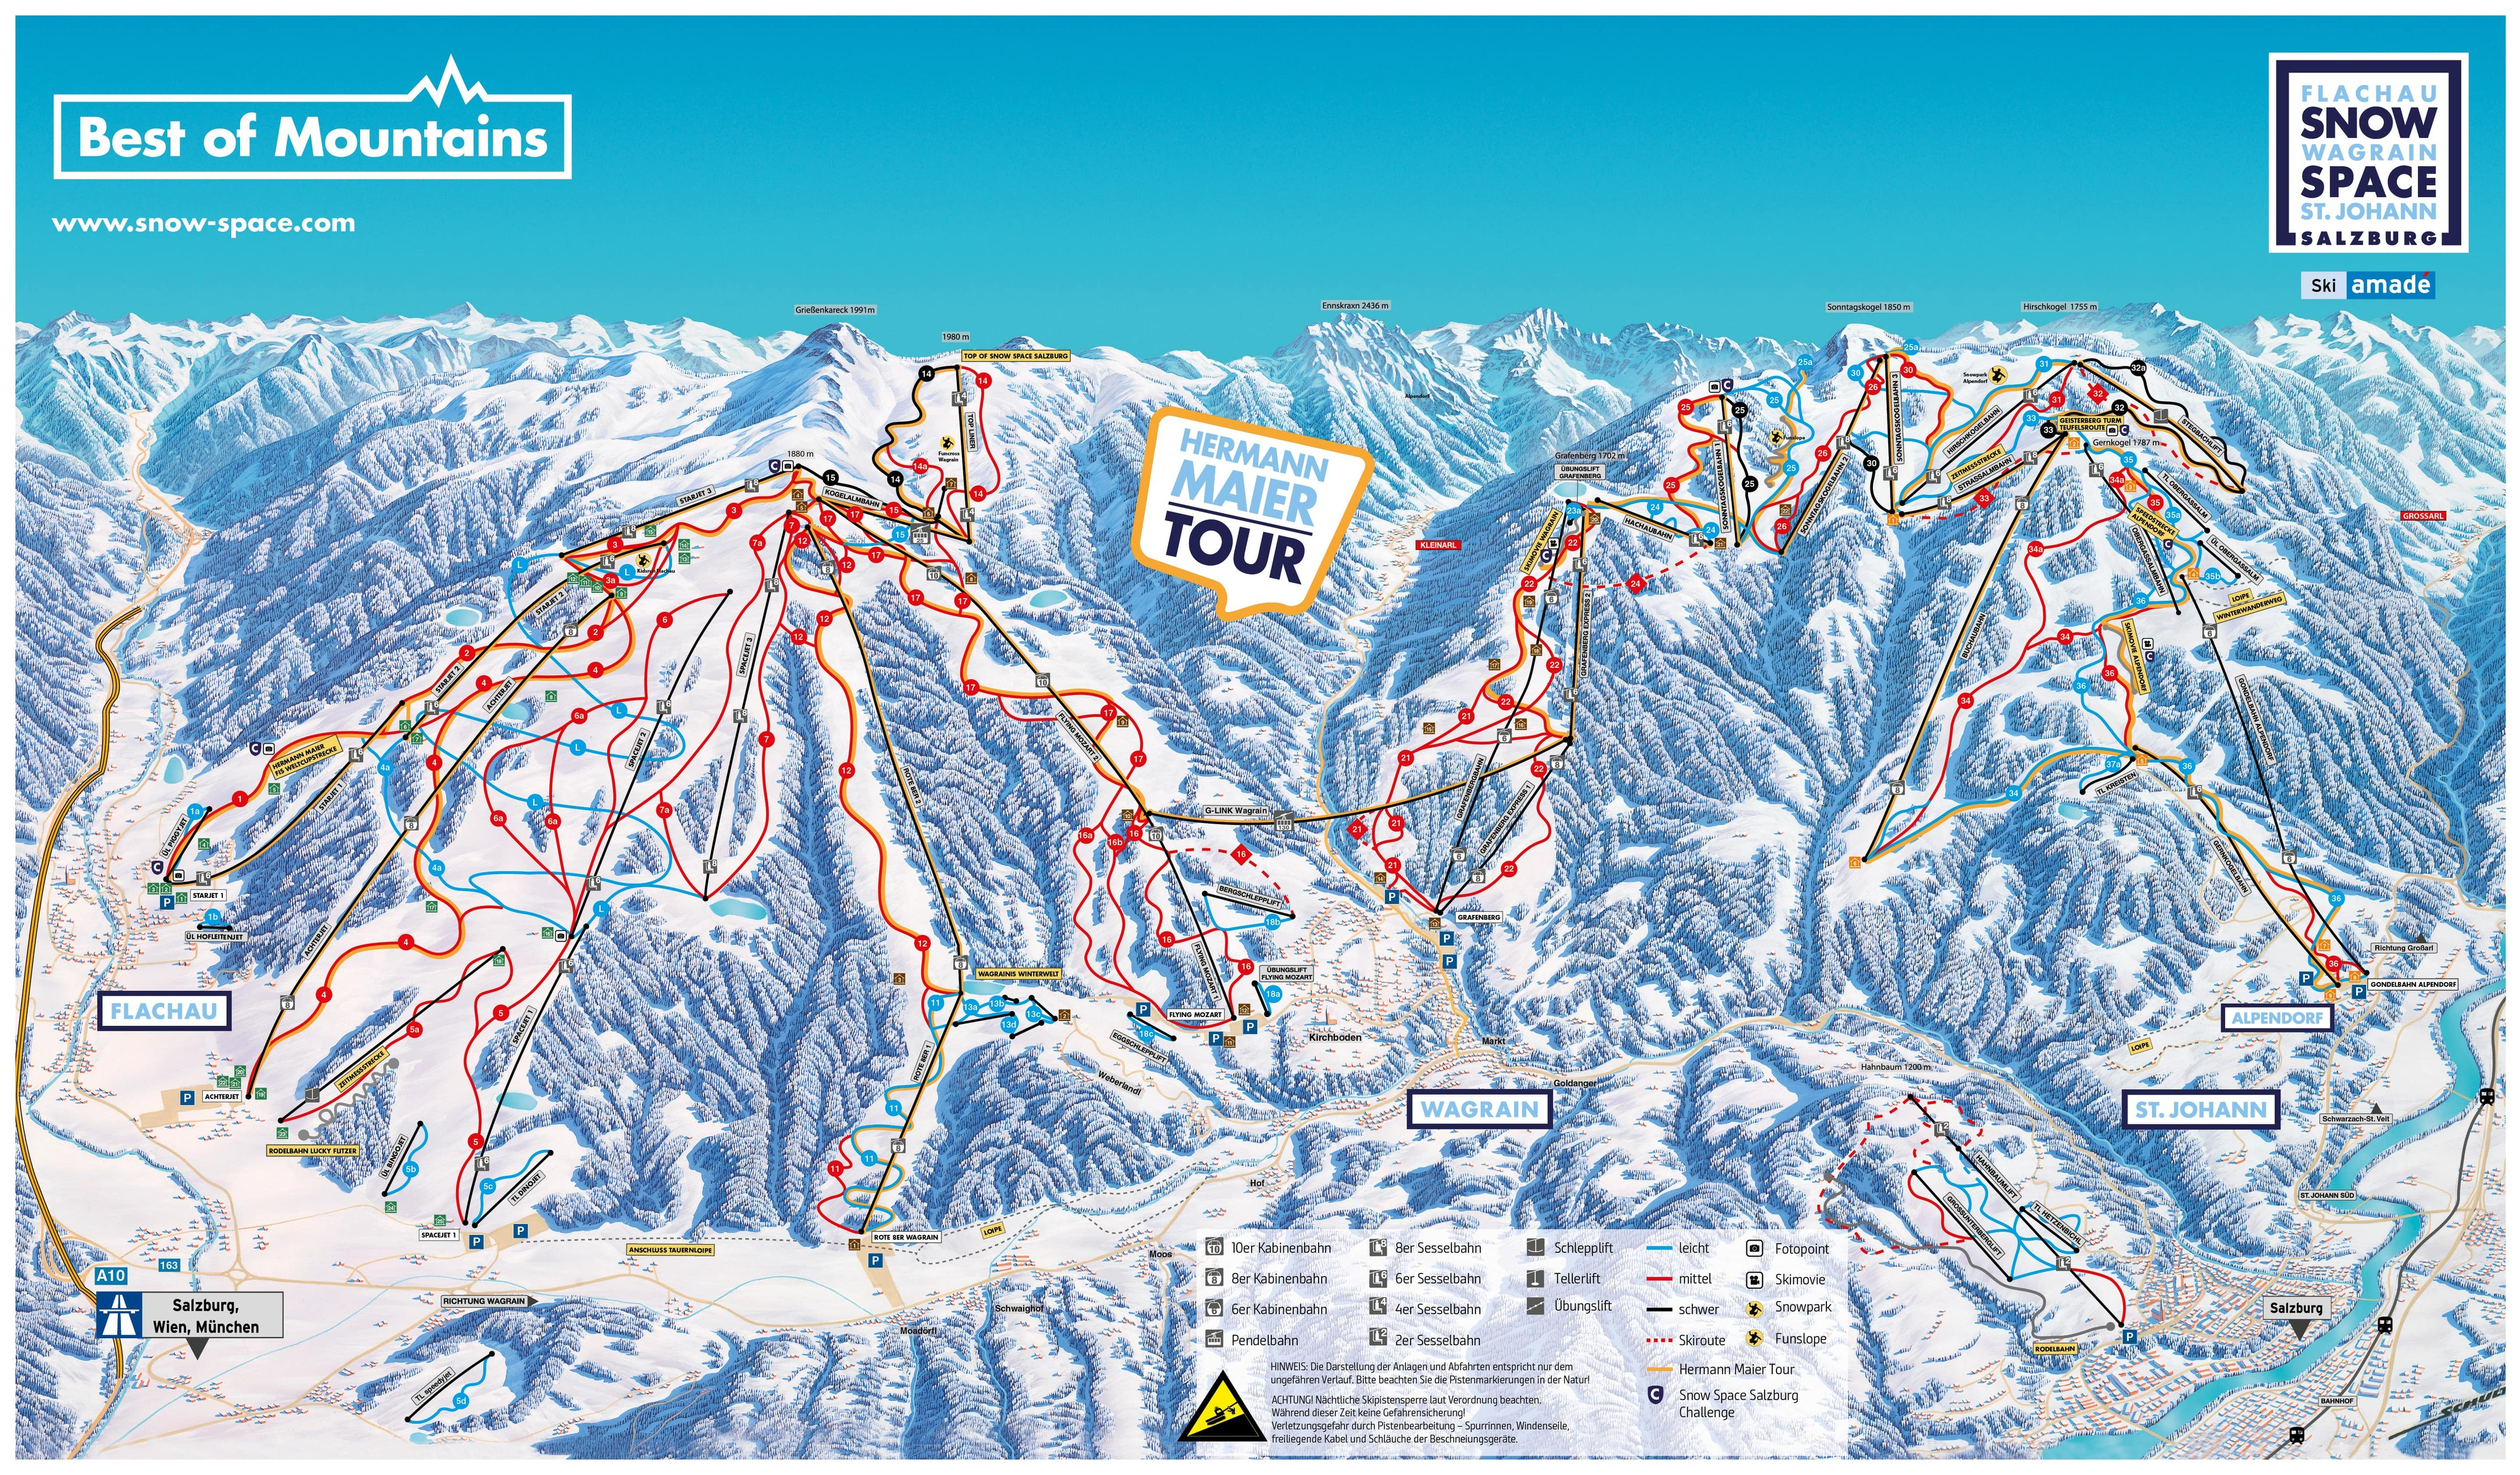 Wagrain Piste / Trail Map